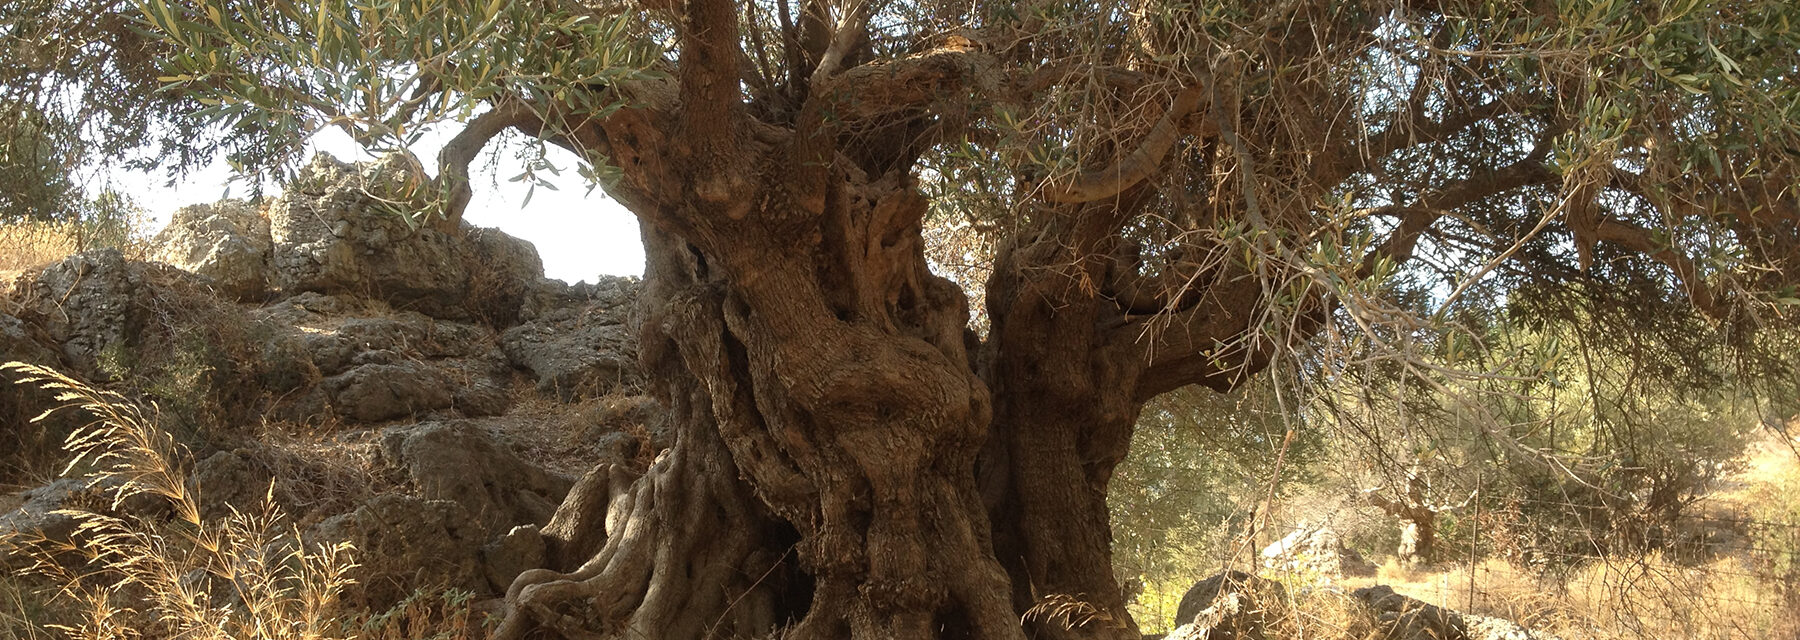 ancient olive tree in Crete